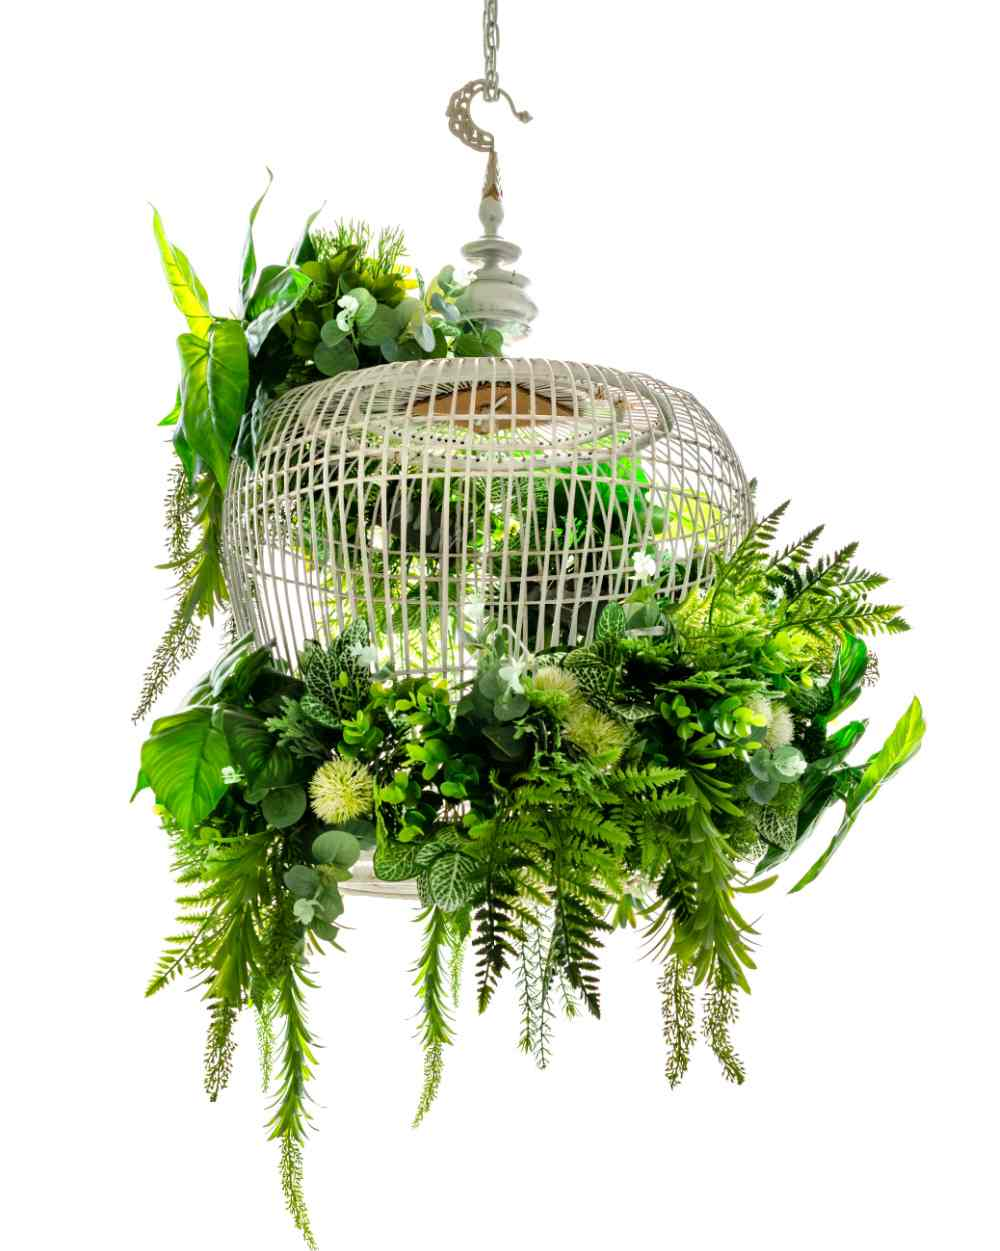 Bird cage planter with trailing leaves.